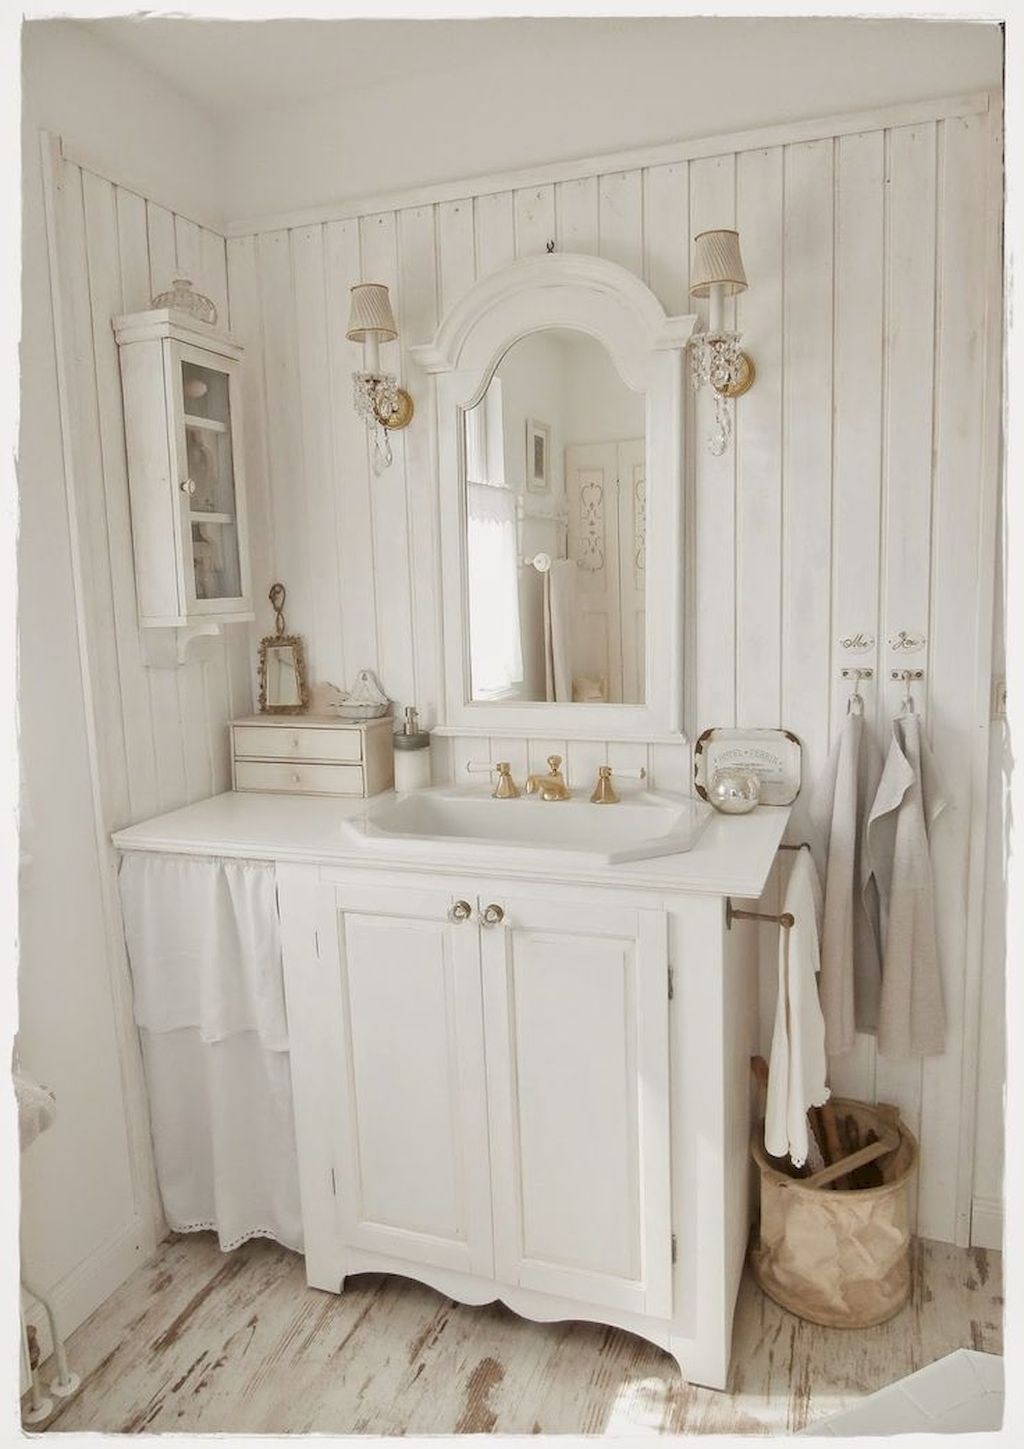 Stunning shabby chic bathroom decoration ideas (36) | IDEAS FOR ...